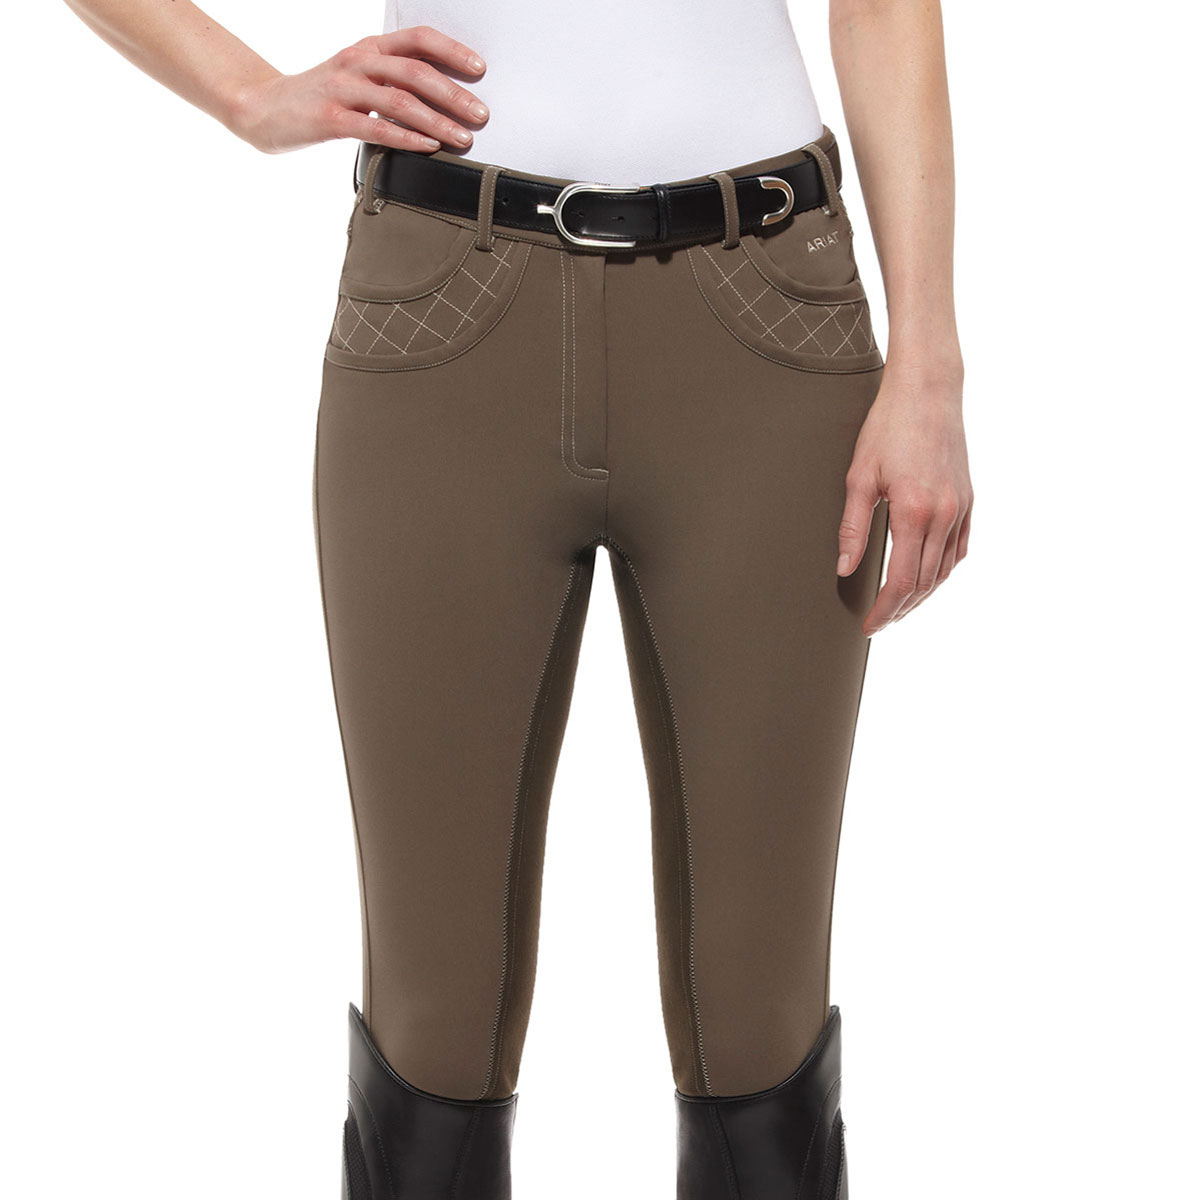 Ariat Olympia Marquis Full Seat Breech- SALE!